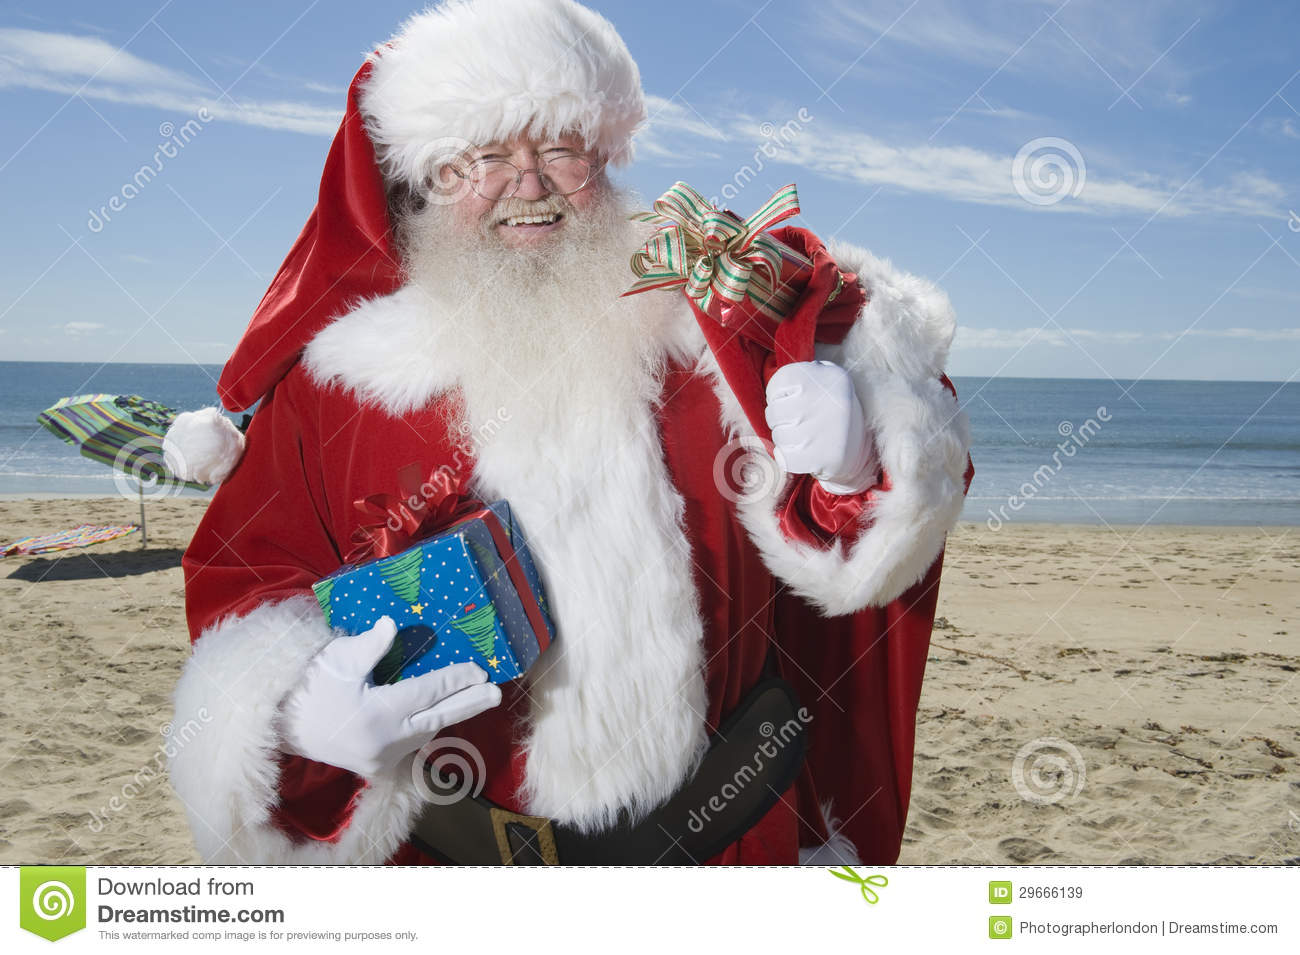 Father Christmas Stands With His Sack On Beach